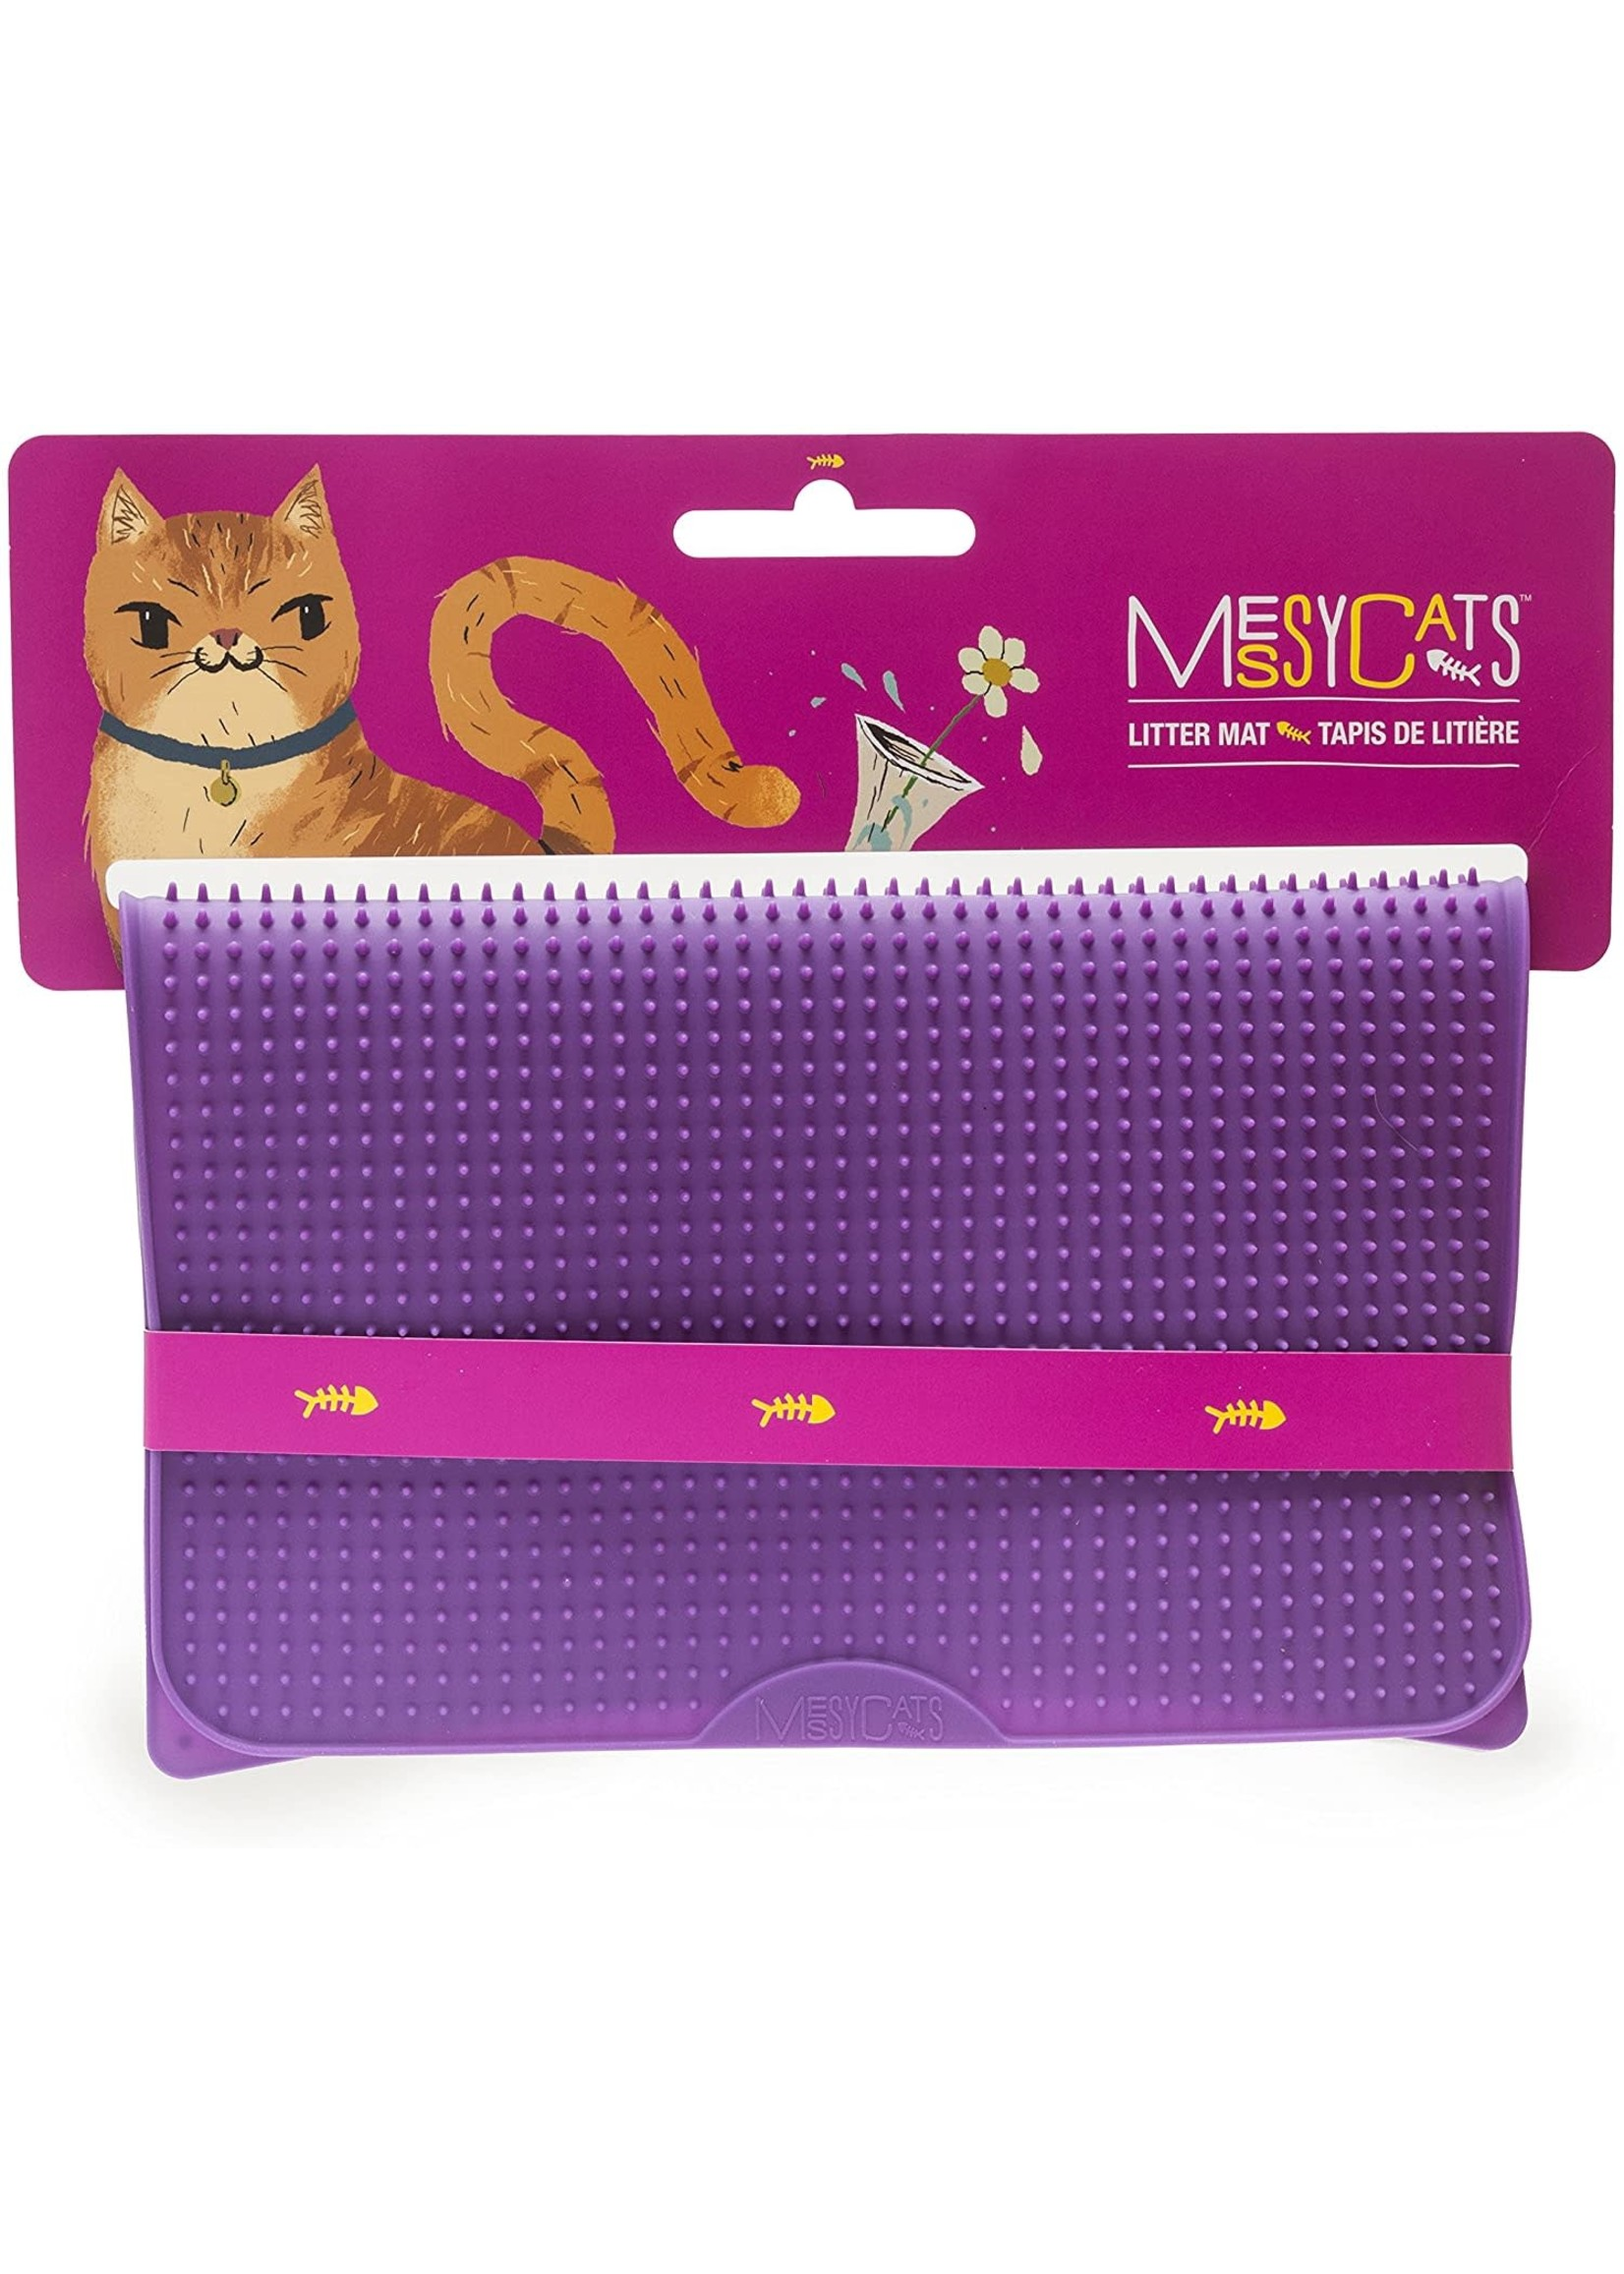 Messy Cats MESSY CATS tapis litiere silicone, mauve